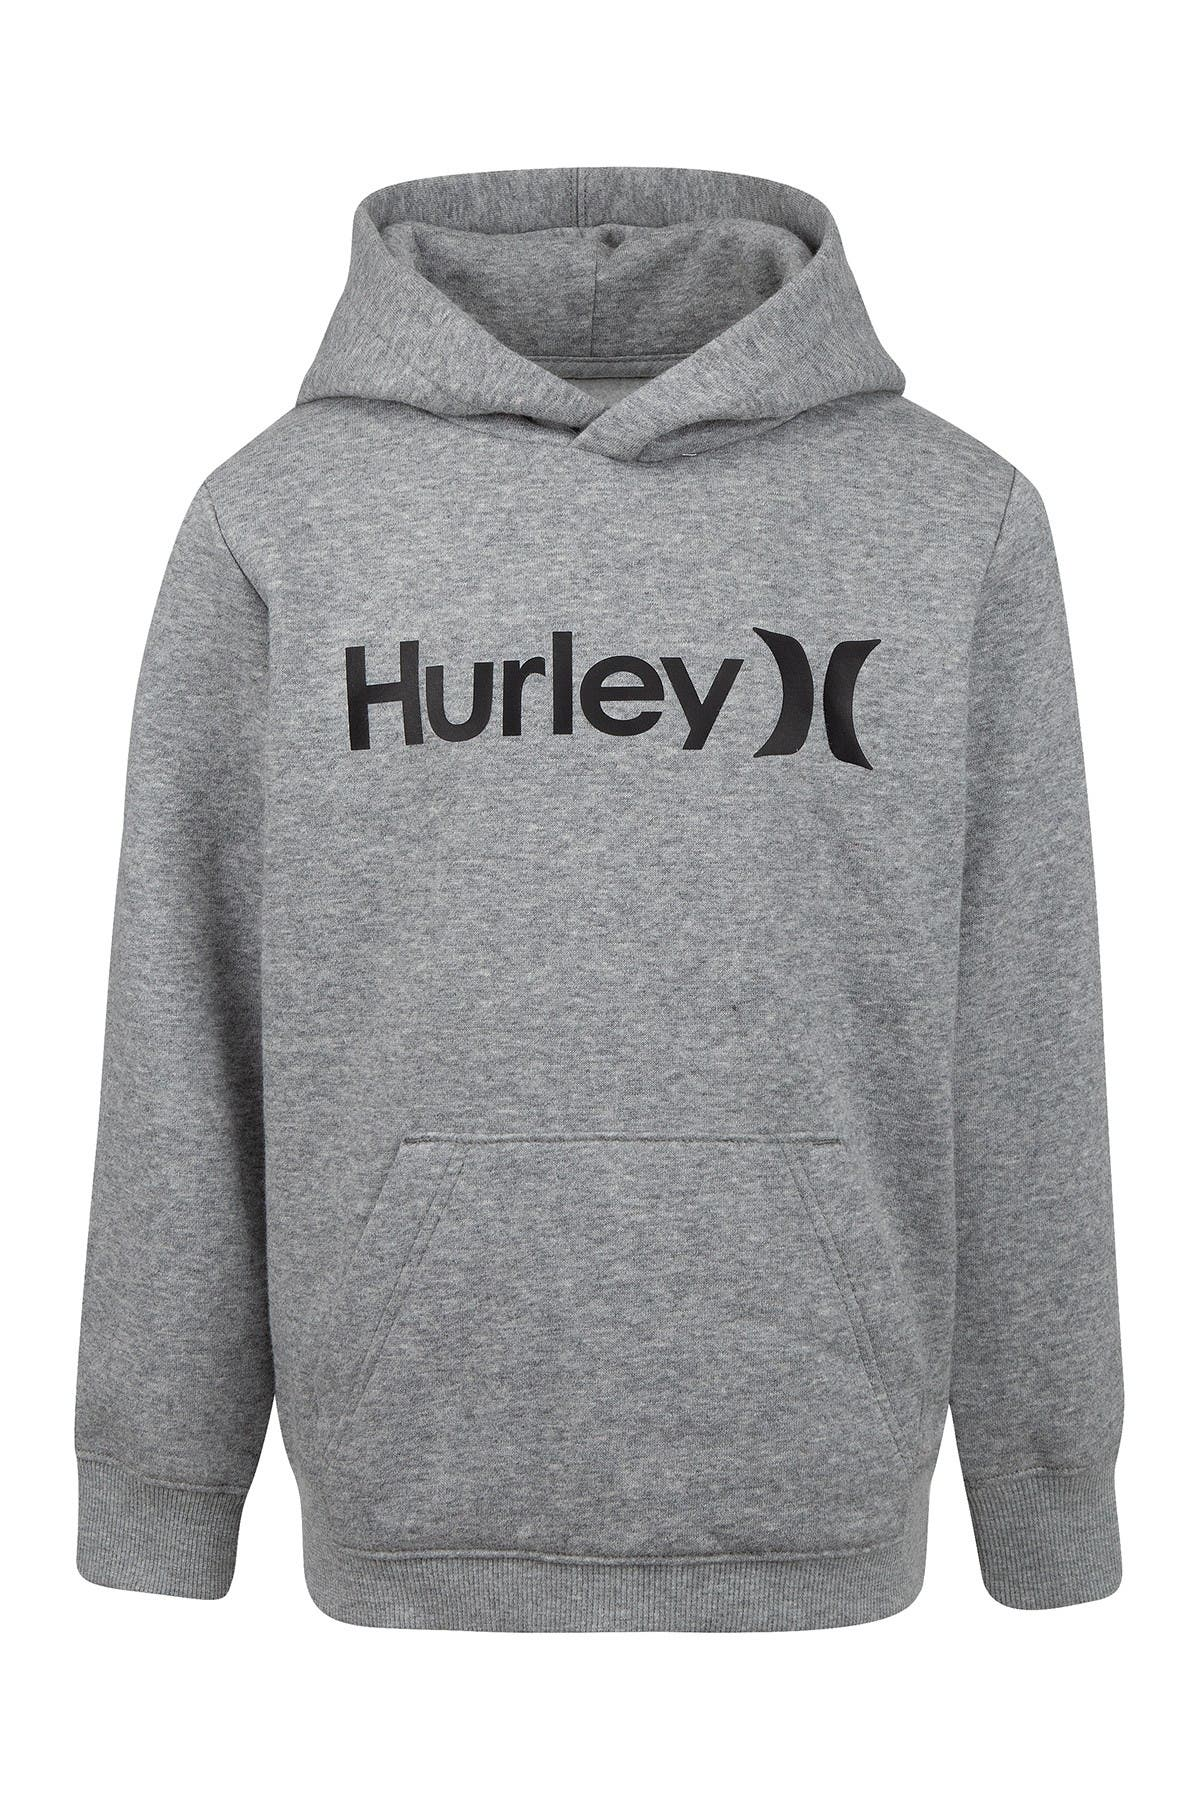 Image of Hurley One & Only Fleece Pullover Hoodie